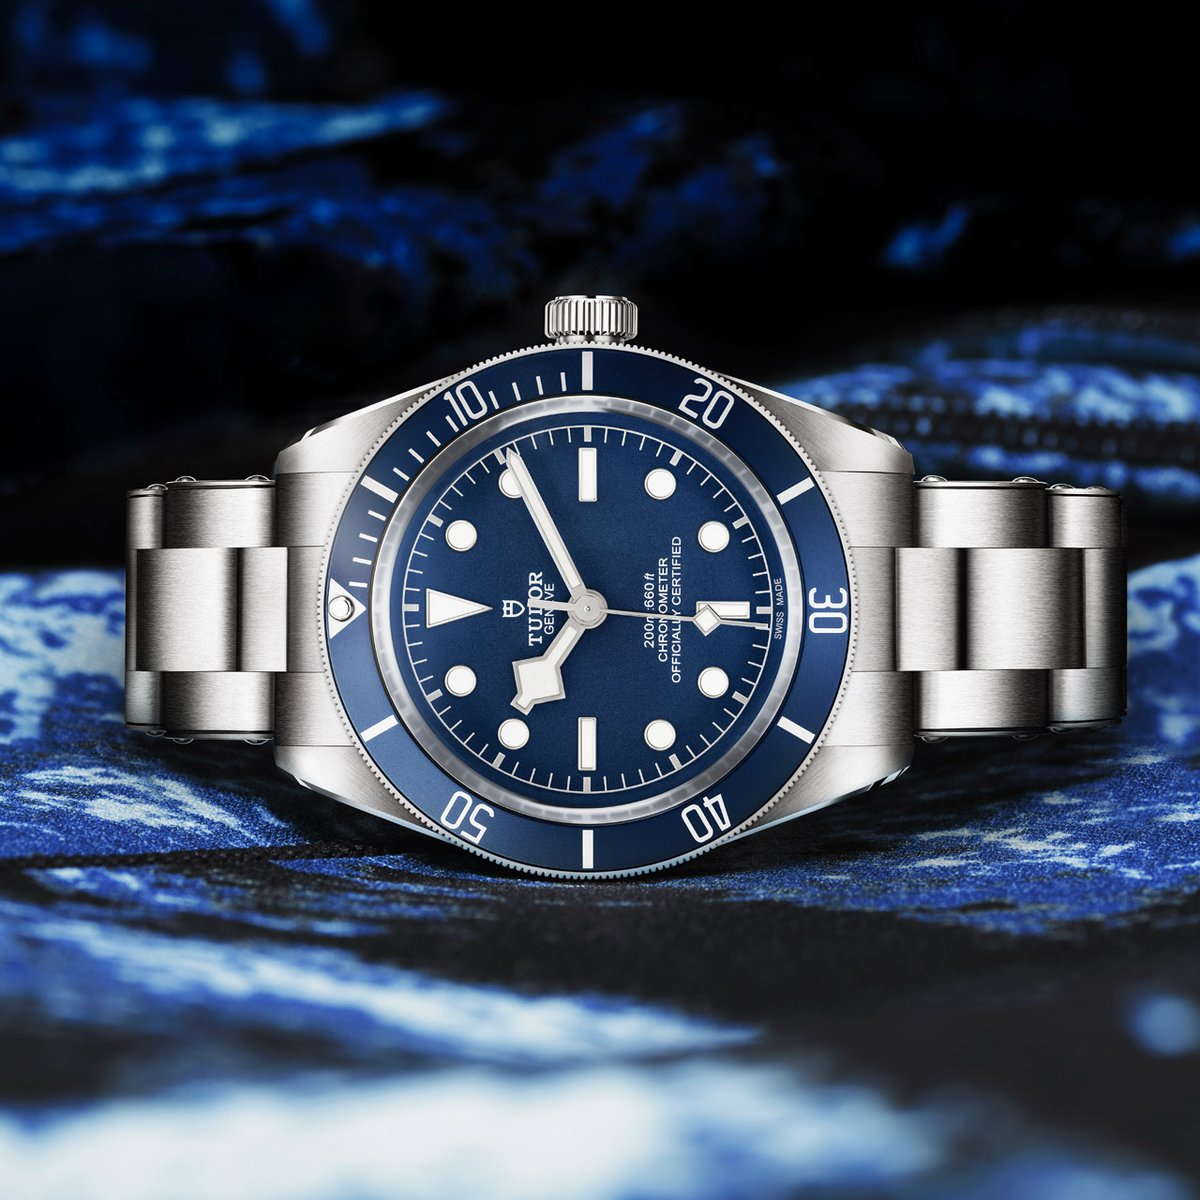 """The new TUDOR Black Bay Fifty-Eight """"Navy Blue"""" 39mm, Manufacture Calibre MT5402. Designed for slim wrists and vintage enthusiasts alike. #BB58 #BorntoDare #OfficialRetailer #FraserHart  View the #TudorWatch collection at Fraser Hart https://t.co/tc70zTQftx https://t.co/Ry7H9I7Wix"""